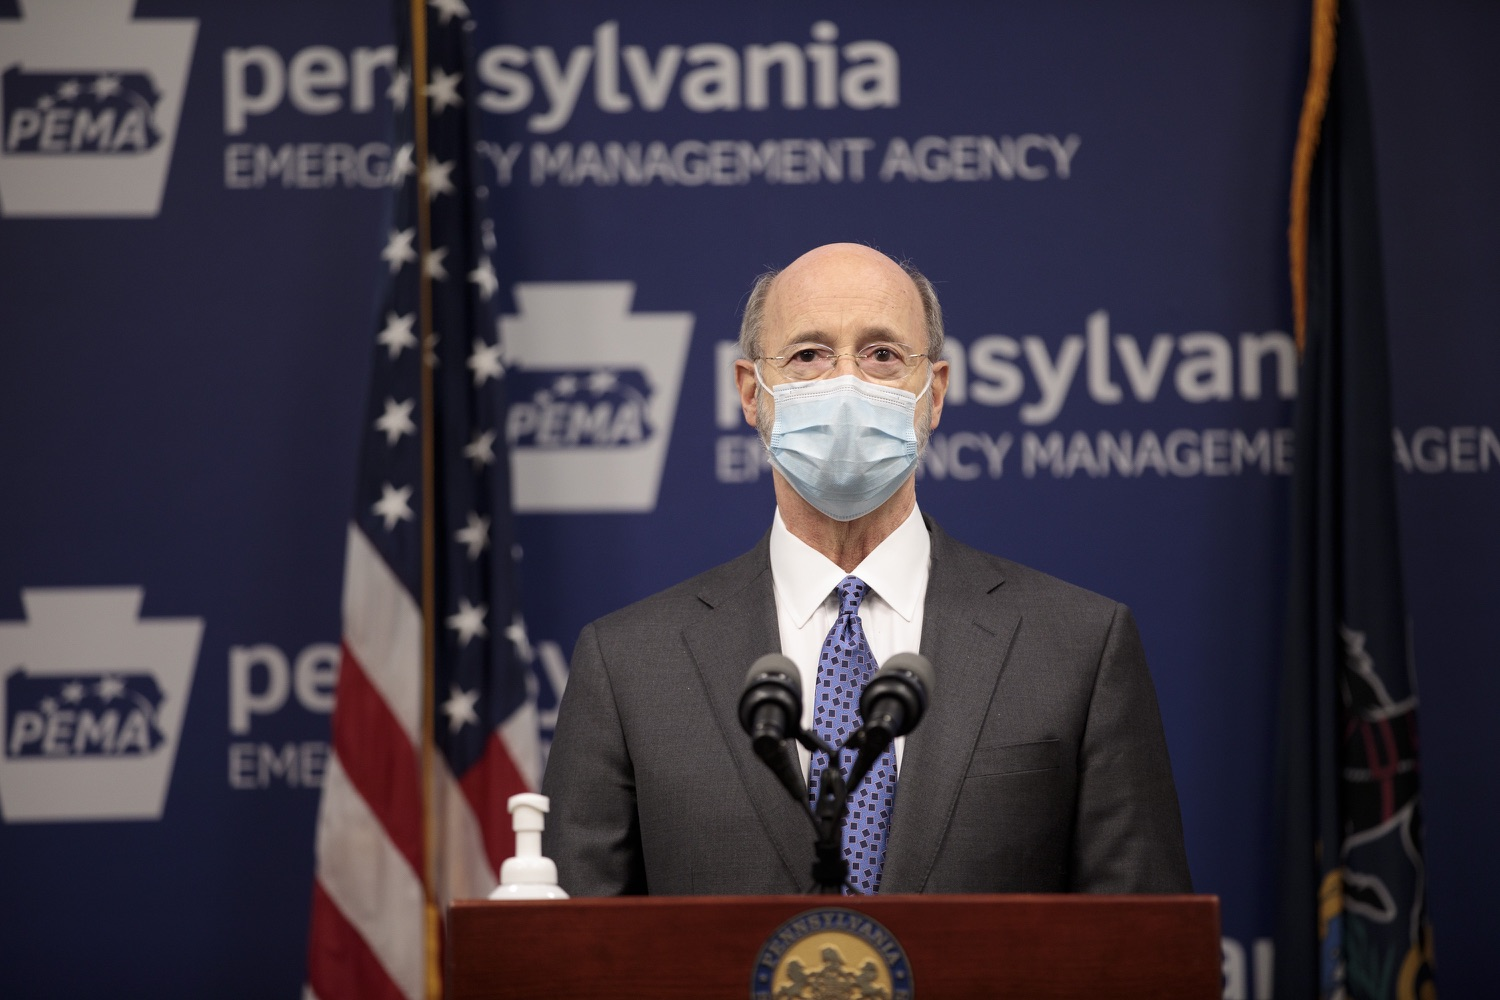 "<a href=""https://filesource.wostreaming.net/commonwealthofpa/photo/18472_gov_vaccine_dz_05.jpg"" target=""_blank"">⇣ Download Photo<br></a>Pennsylvania Governor Tom Wolf speaks at the press conference.  The commonwealths COVID-19 vaccination distribution plan was designed to be fluid and flexible to meet guidance and recommendations from the federal government. Today, Governor Tom Wolf and Secretary of Health Dr. Rachel Levine announced the fourth version of the plan, detailing the updates and how the state is working to ensure safe, swift implementation. Harrisburg, PA  January 8, 2021"